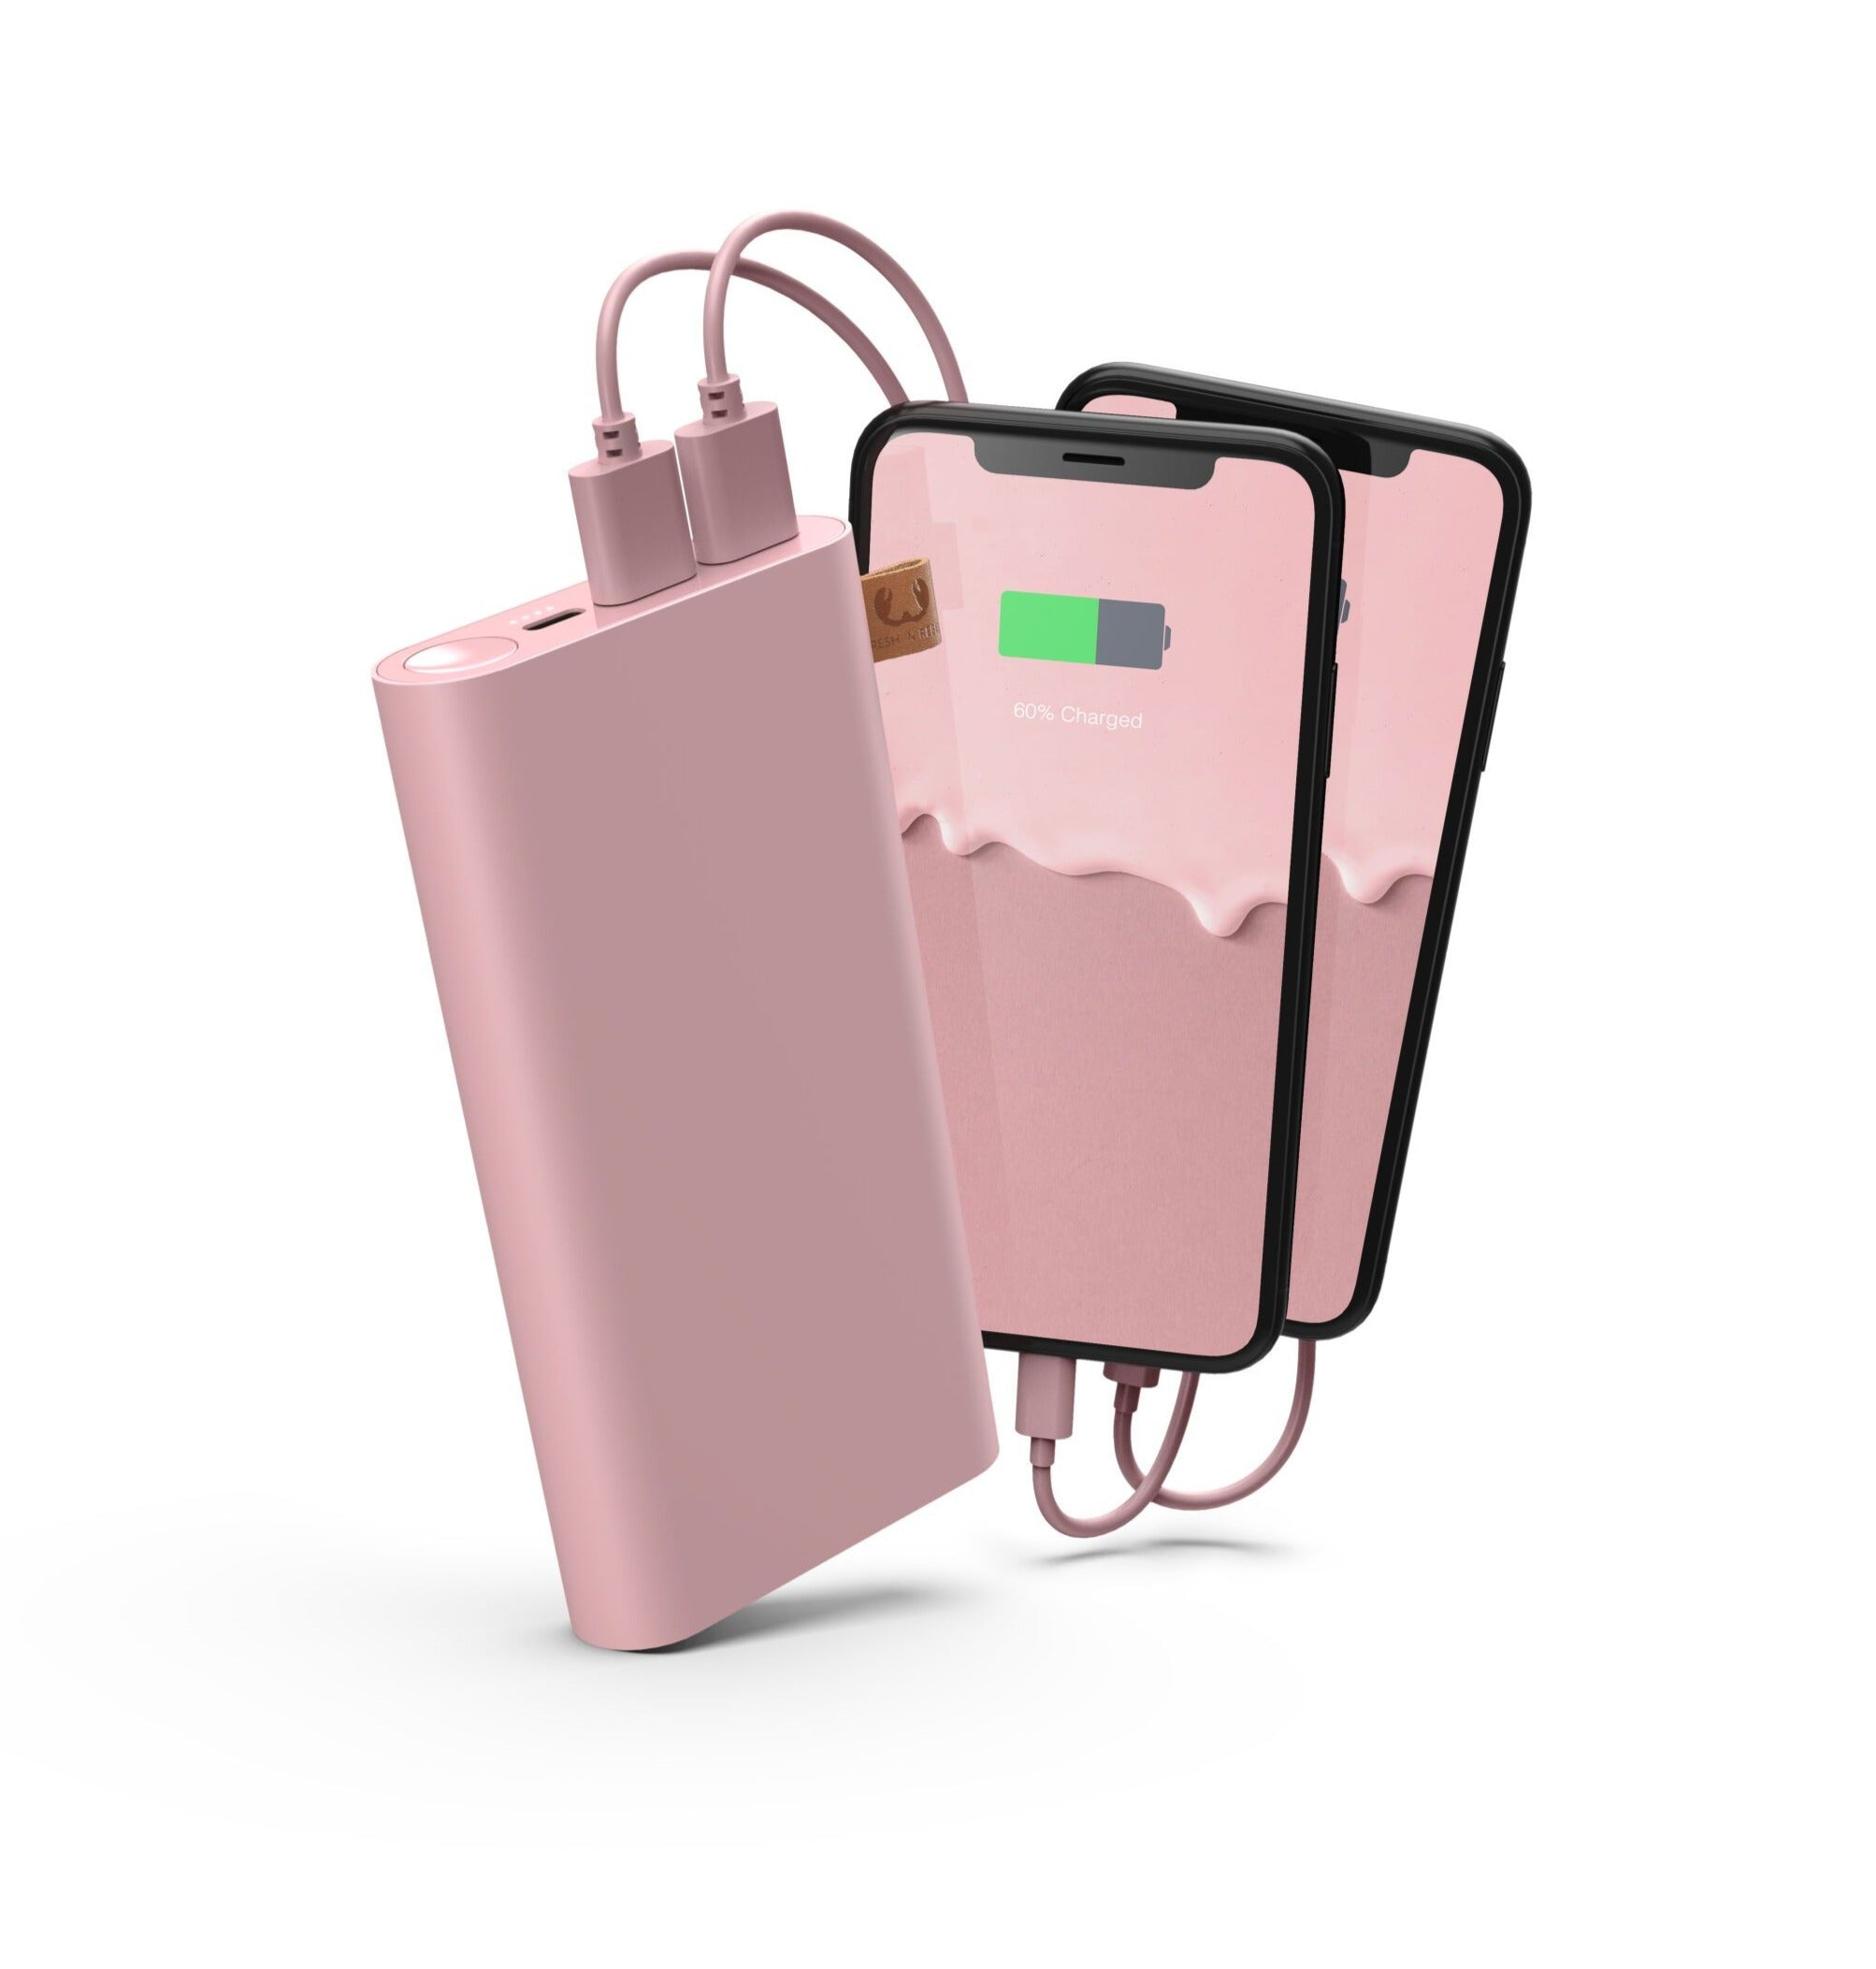 FRESH 'N REBEL // Pink powebank